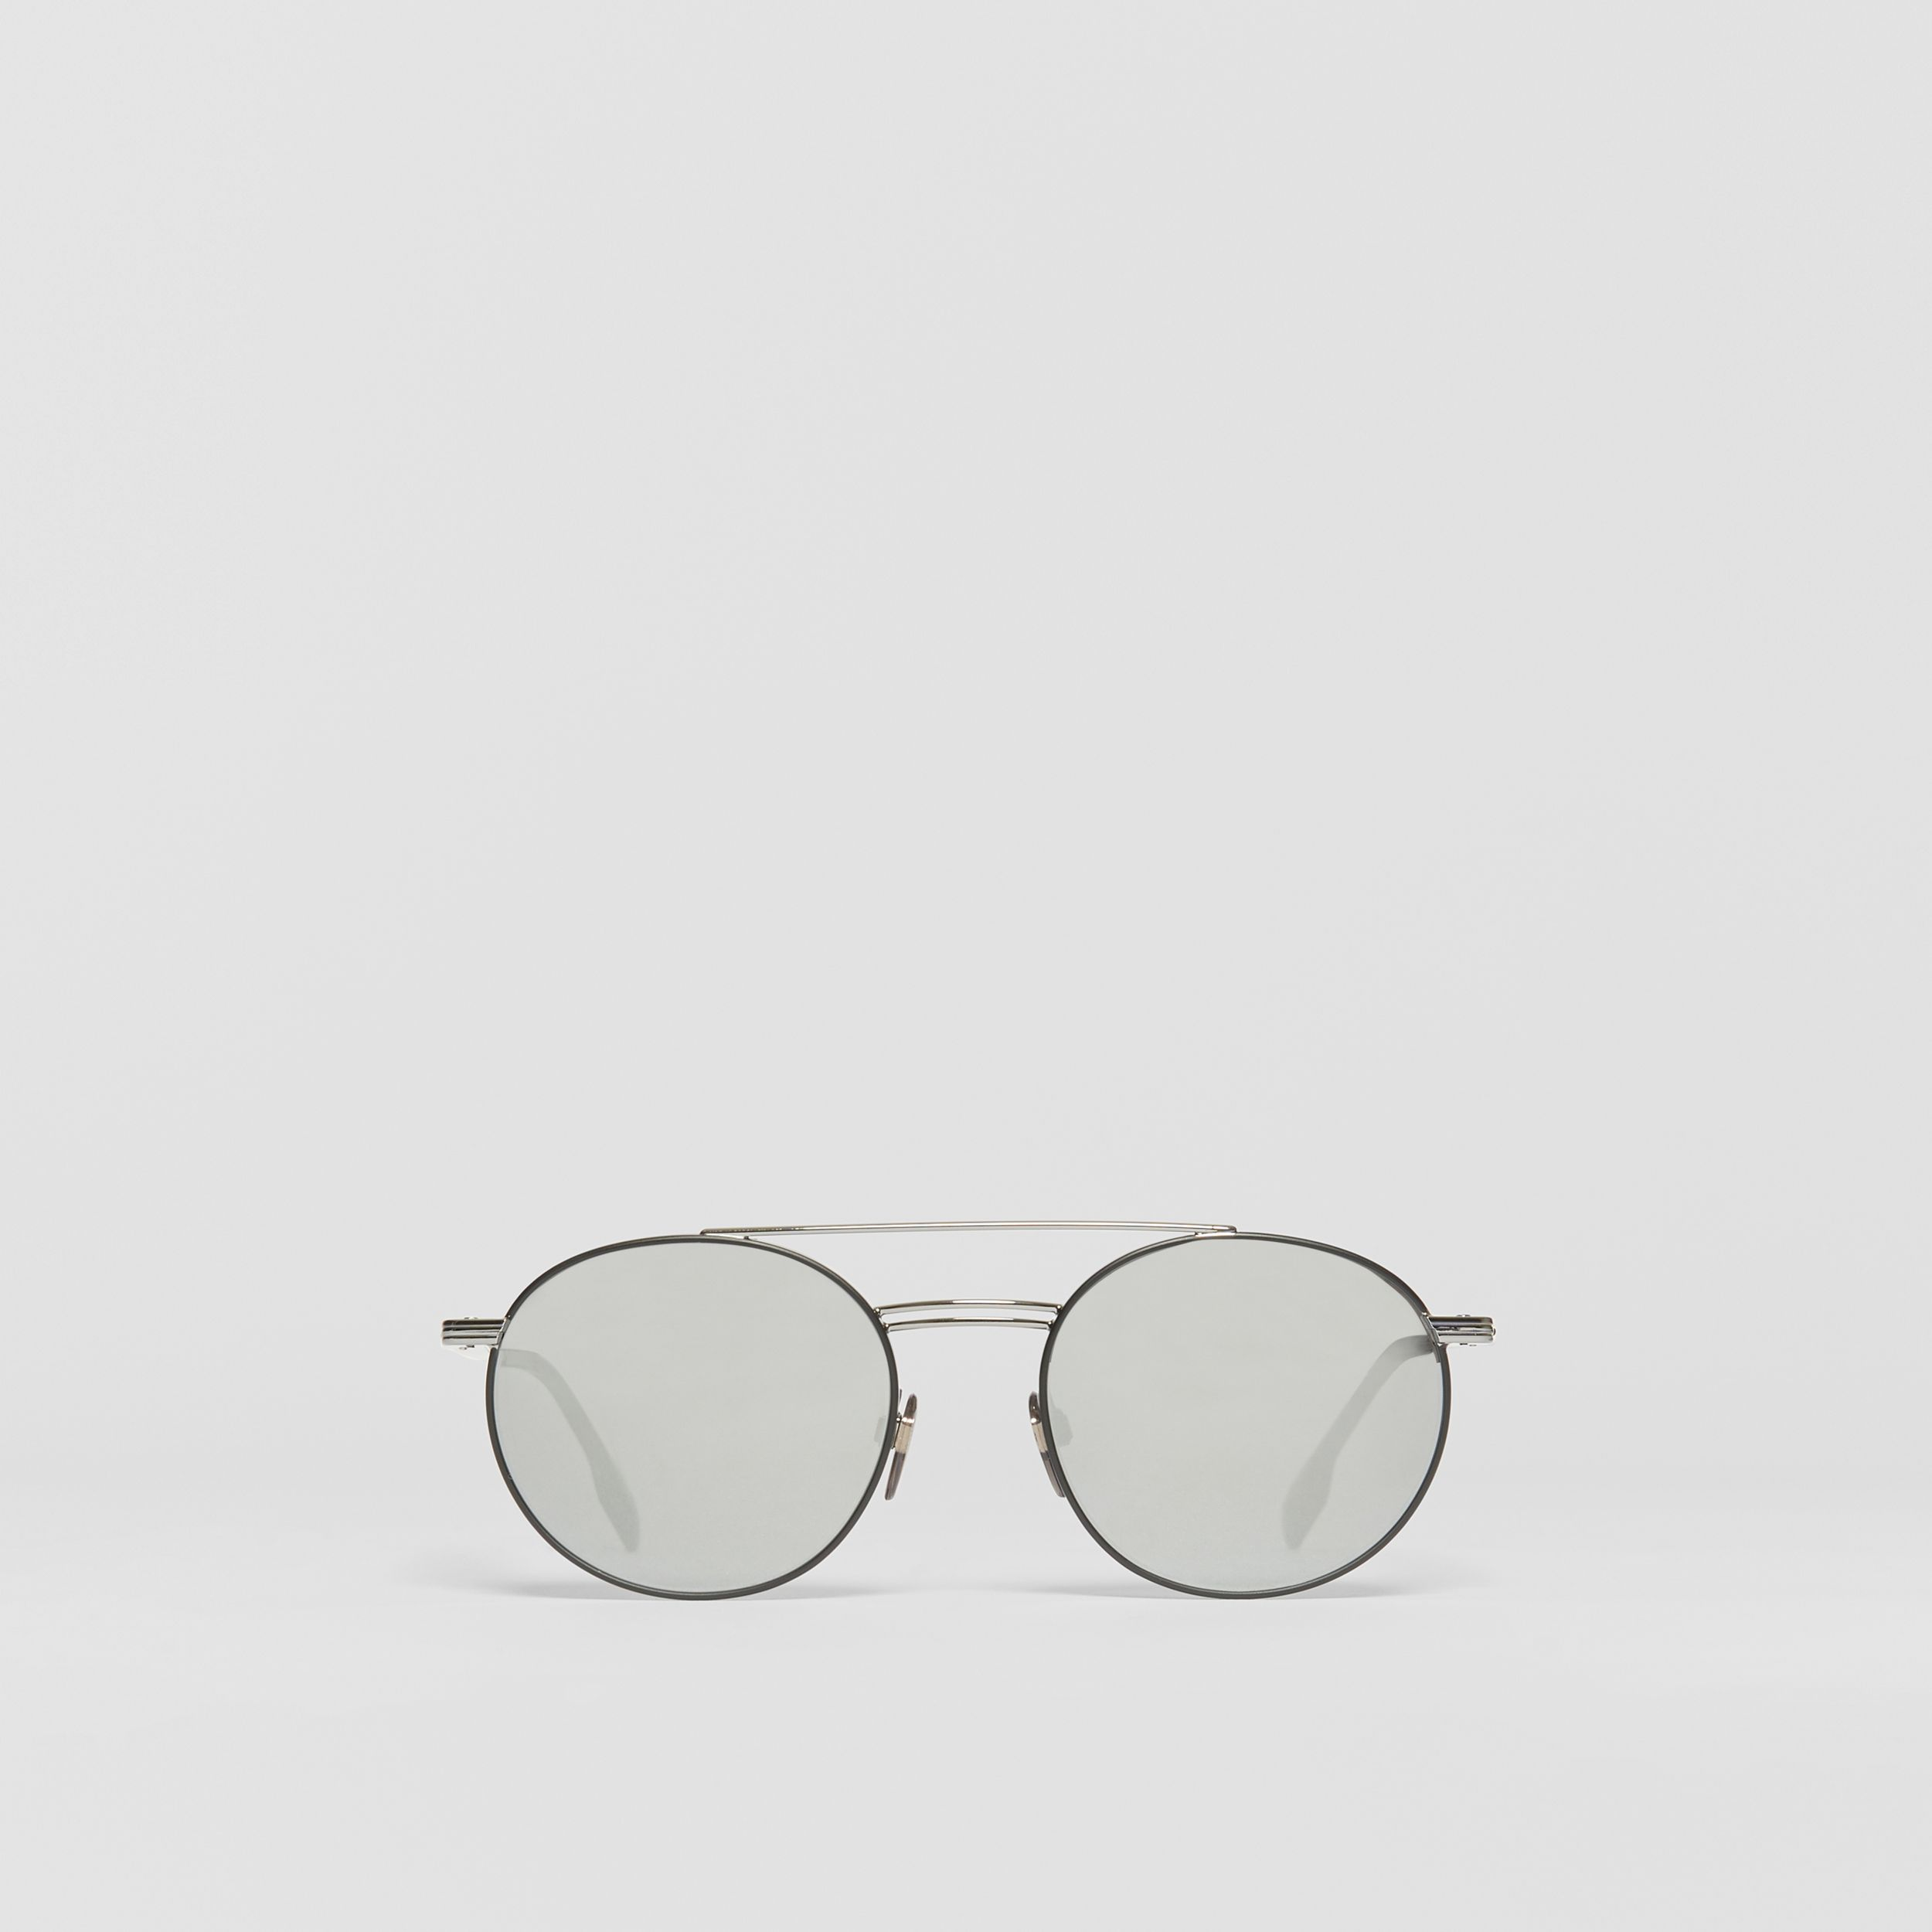 Top Bar Detail Round Frame Sunglasses in Gunmetal Grey - Men | Burberry Hong Kong S.A.R. - 1